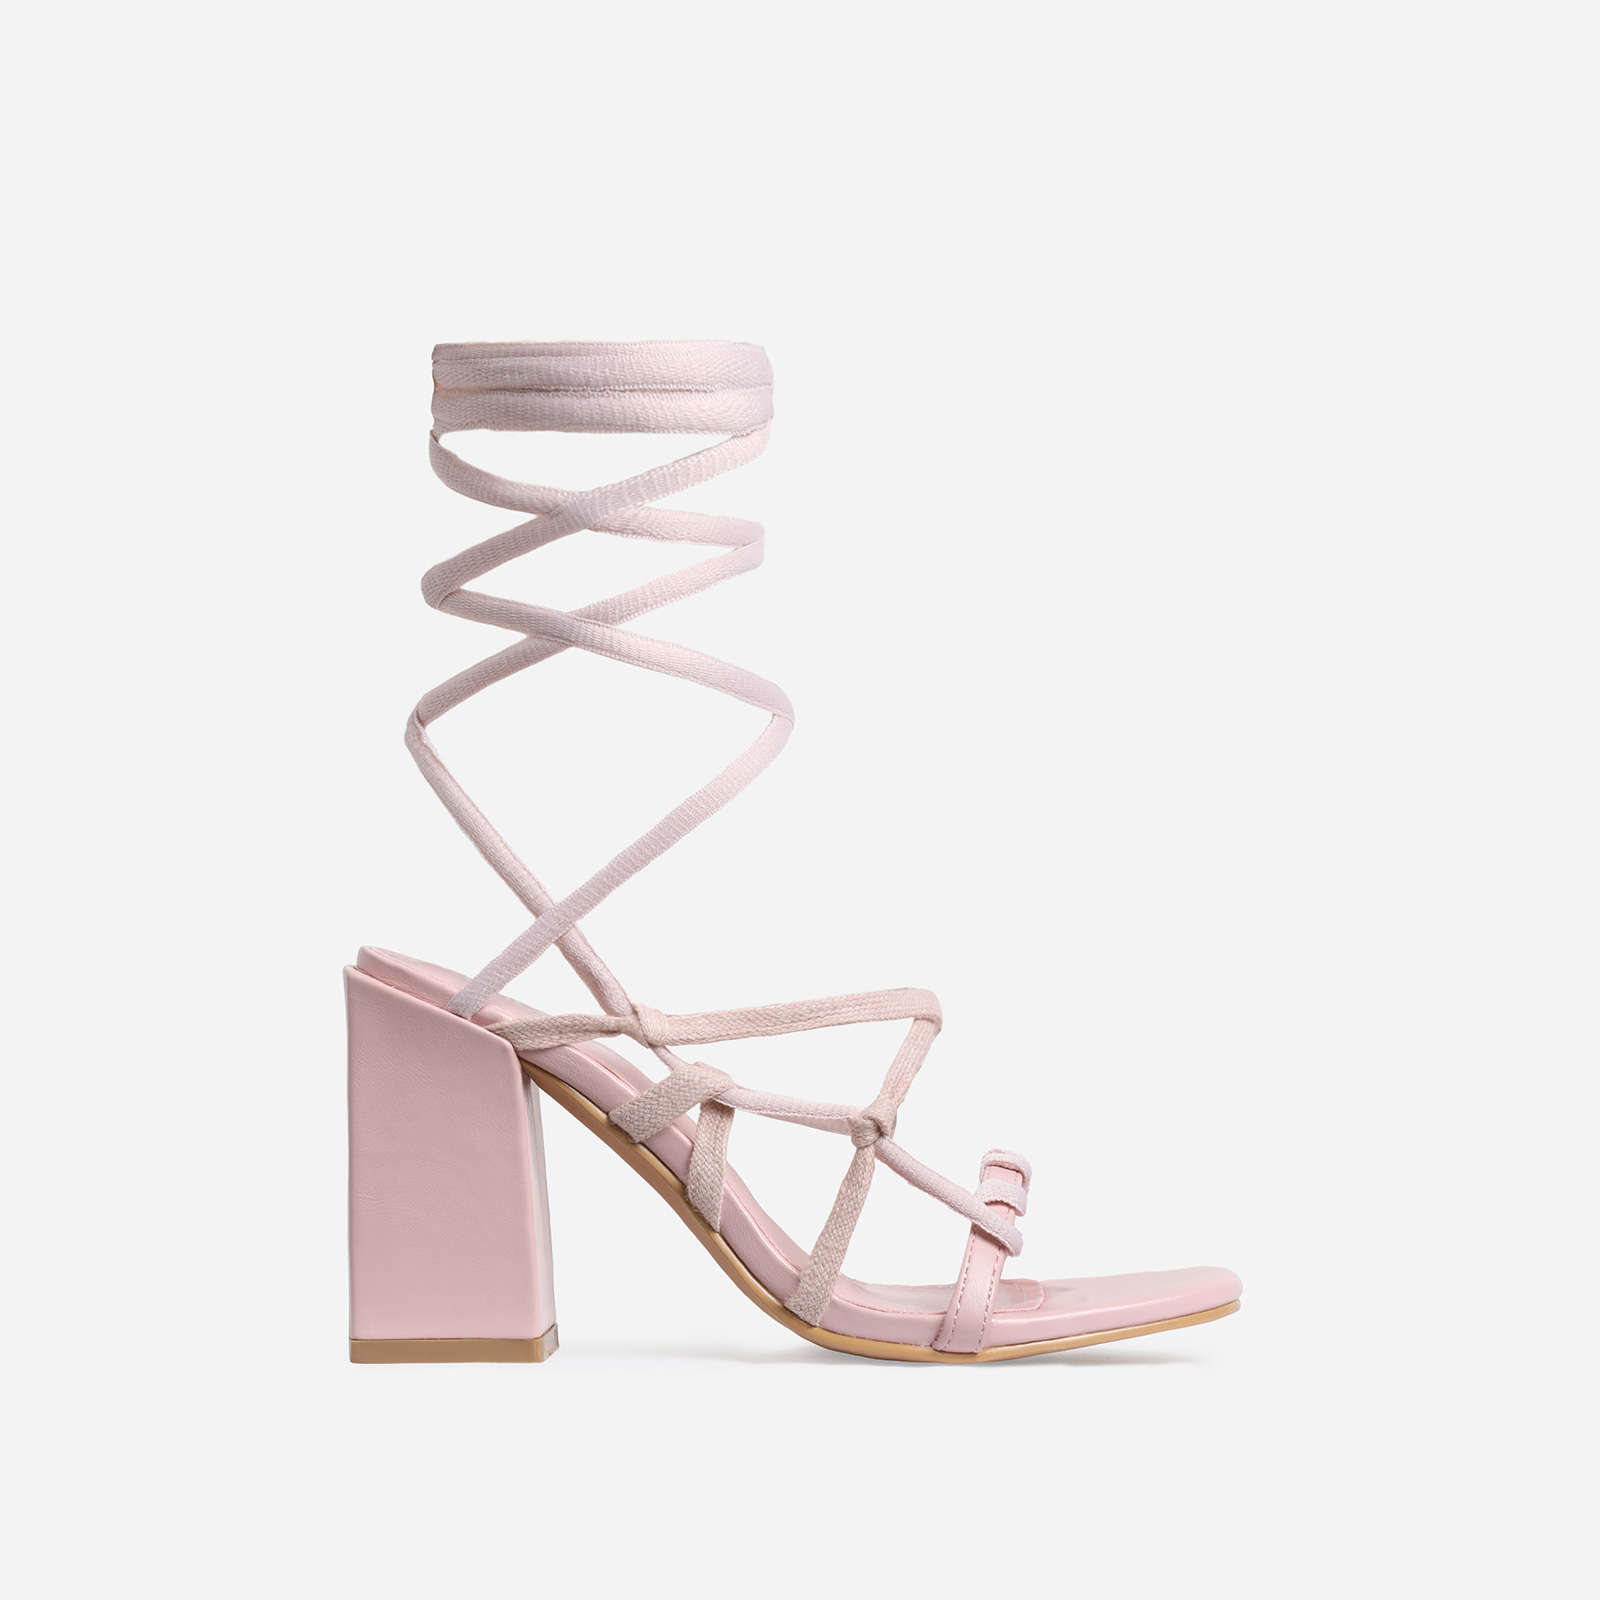 Erzi Square Toe Lace Up Block Heel In Pink Faux Leather